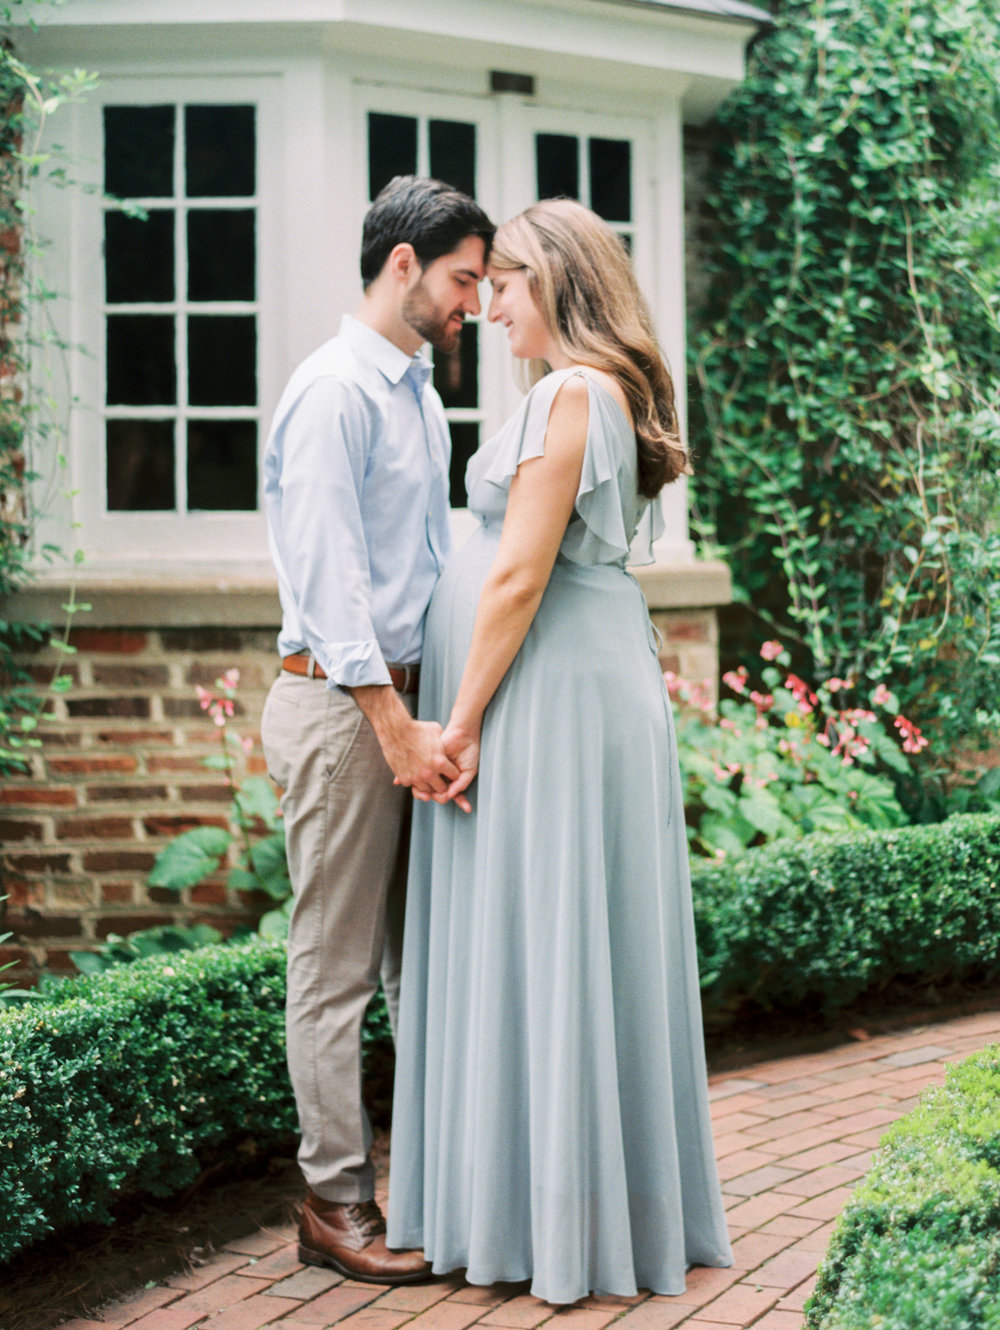 shackleford maternity four corners photography athens maternity photographer anna shackleford photography atlanta film photographer maternity photography-15.jpg